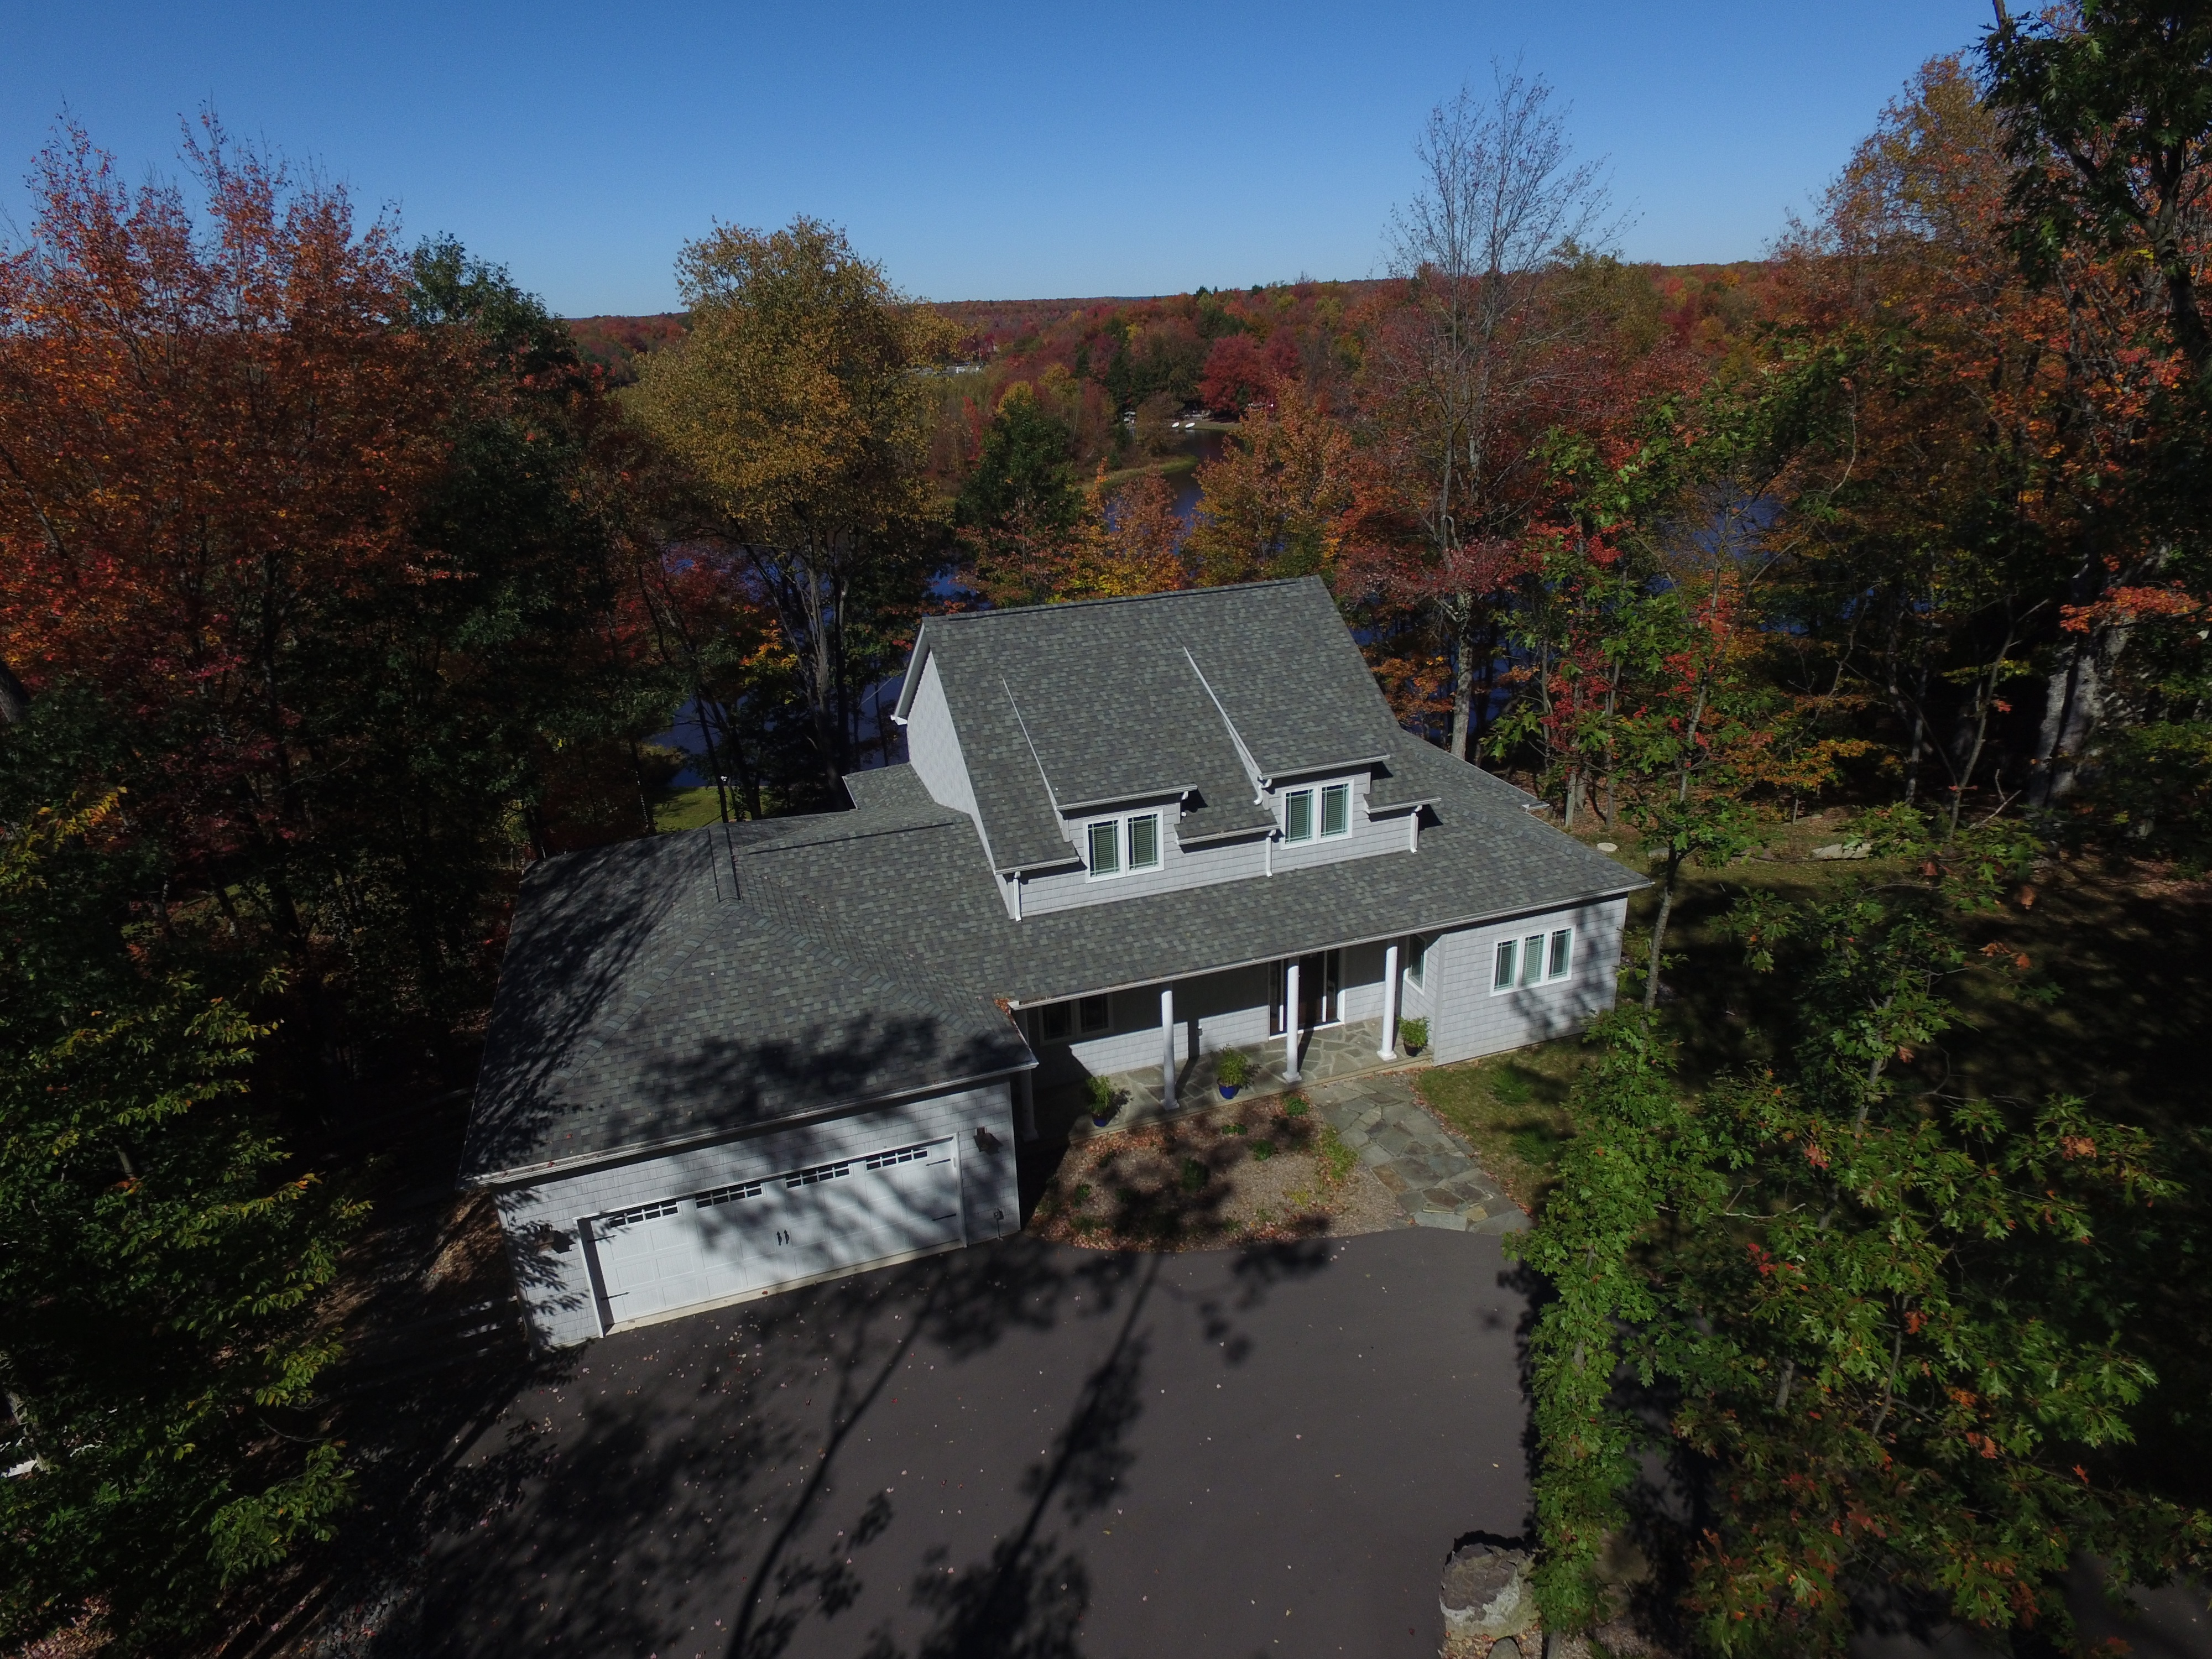 Arrowhead Lakes Home Surrounded by Fall Foliage